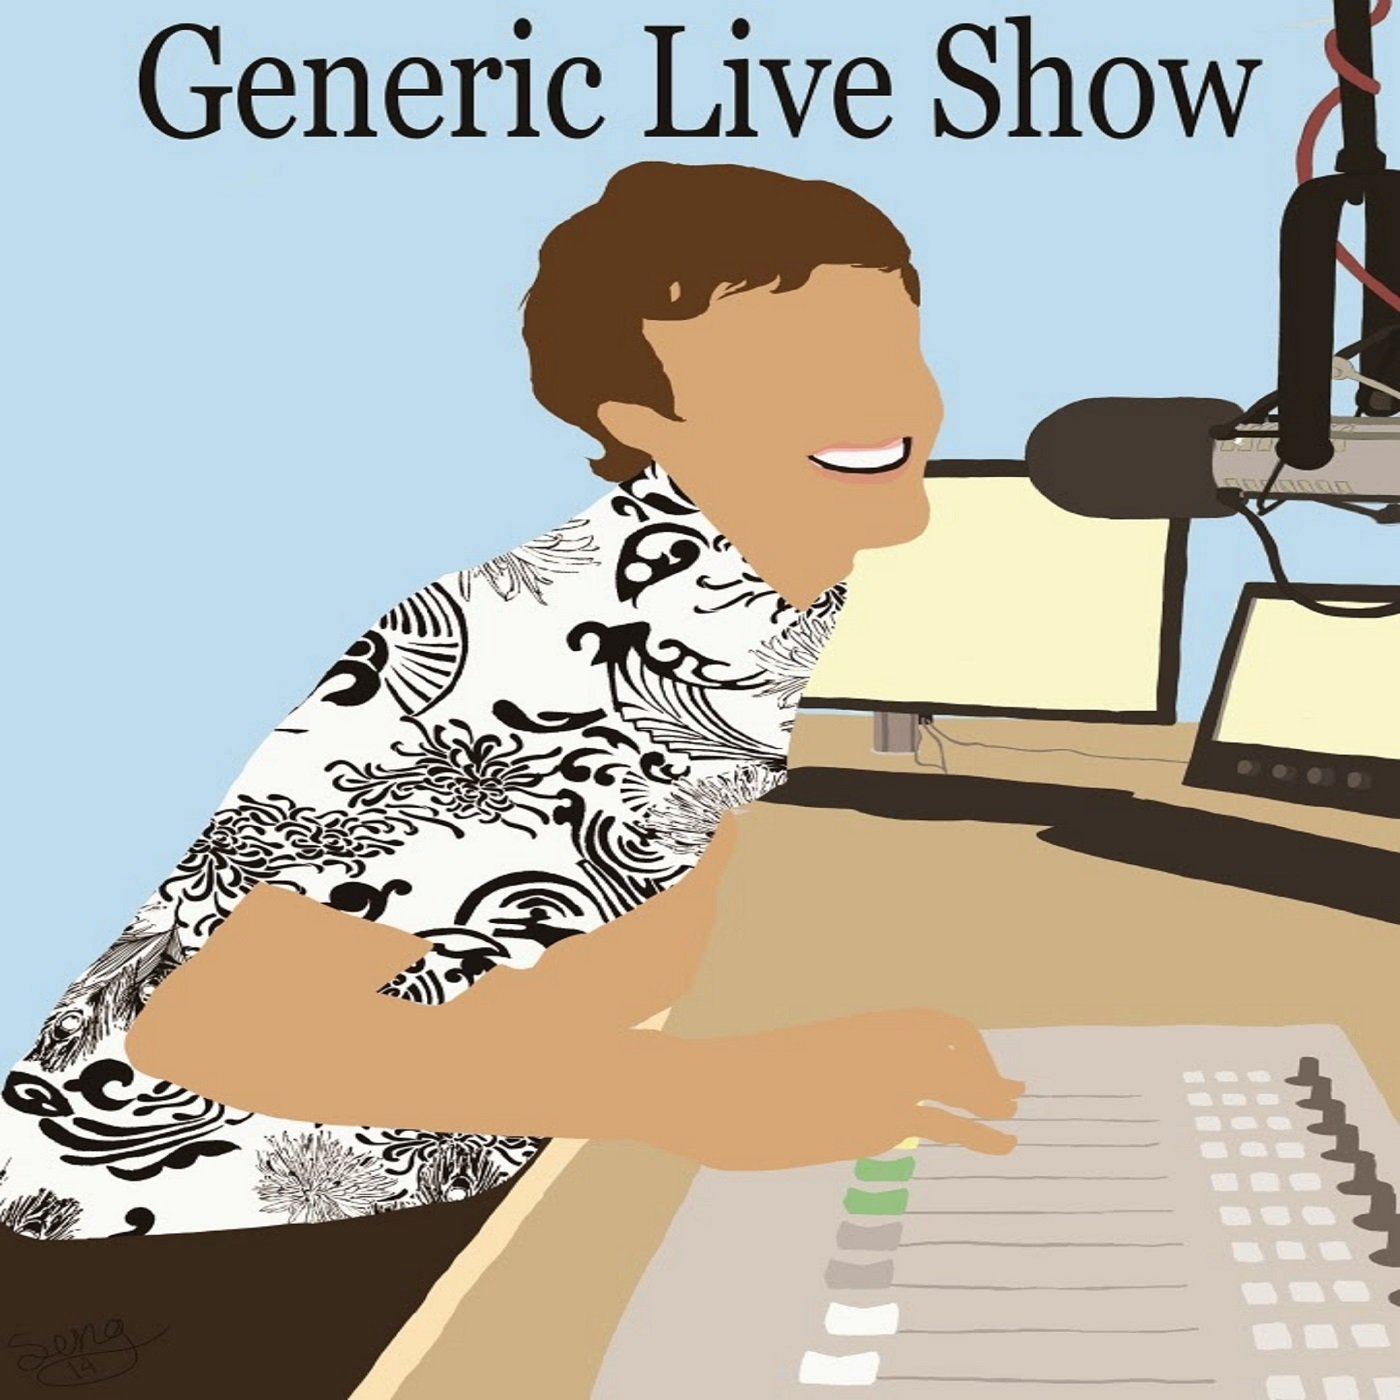 Generic Live Show! - The Geek I/O Network